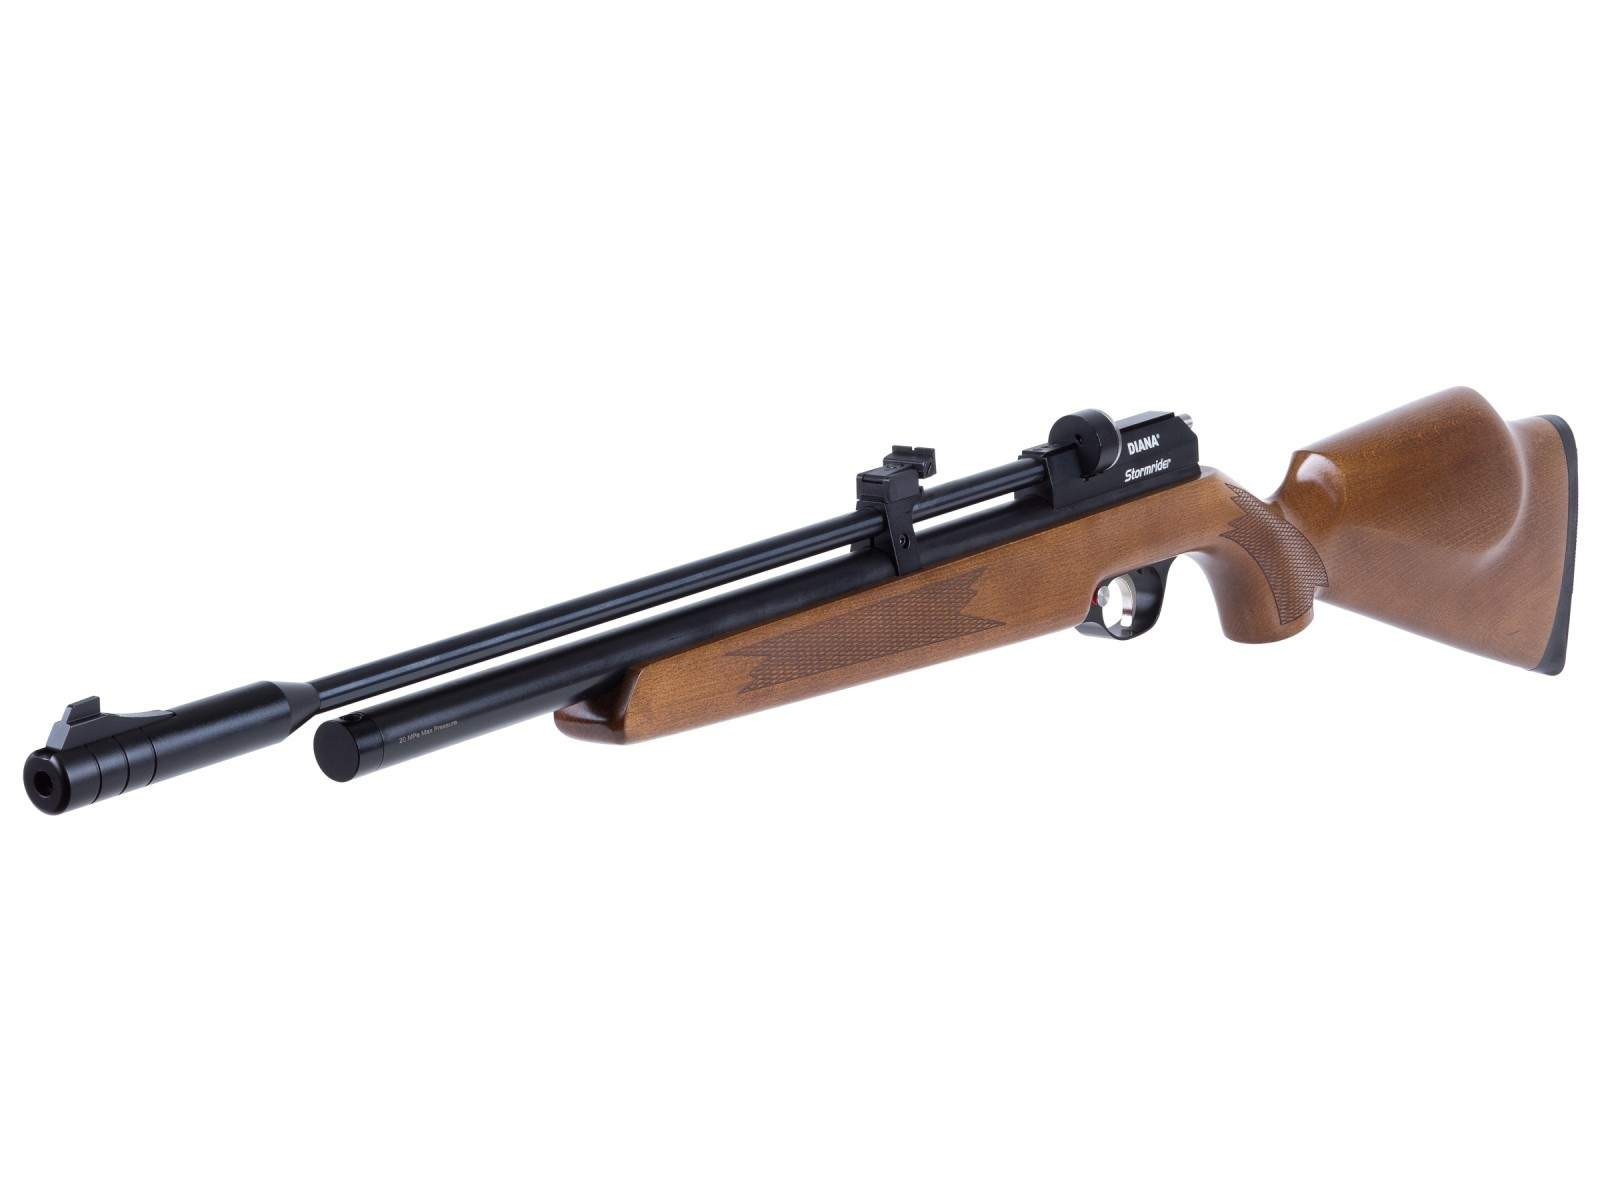 Best PCP air rifles - 5 of the best PCP guns you can buy right now